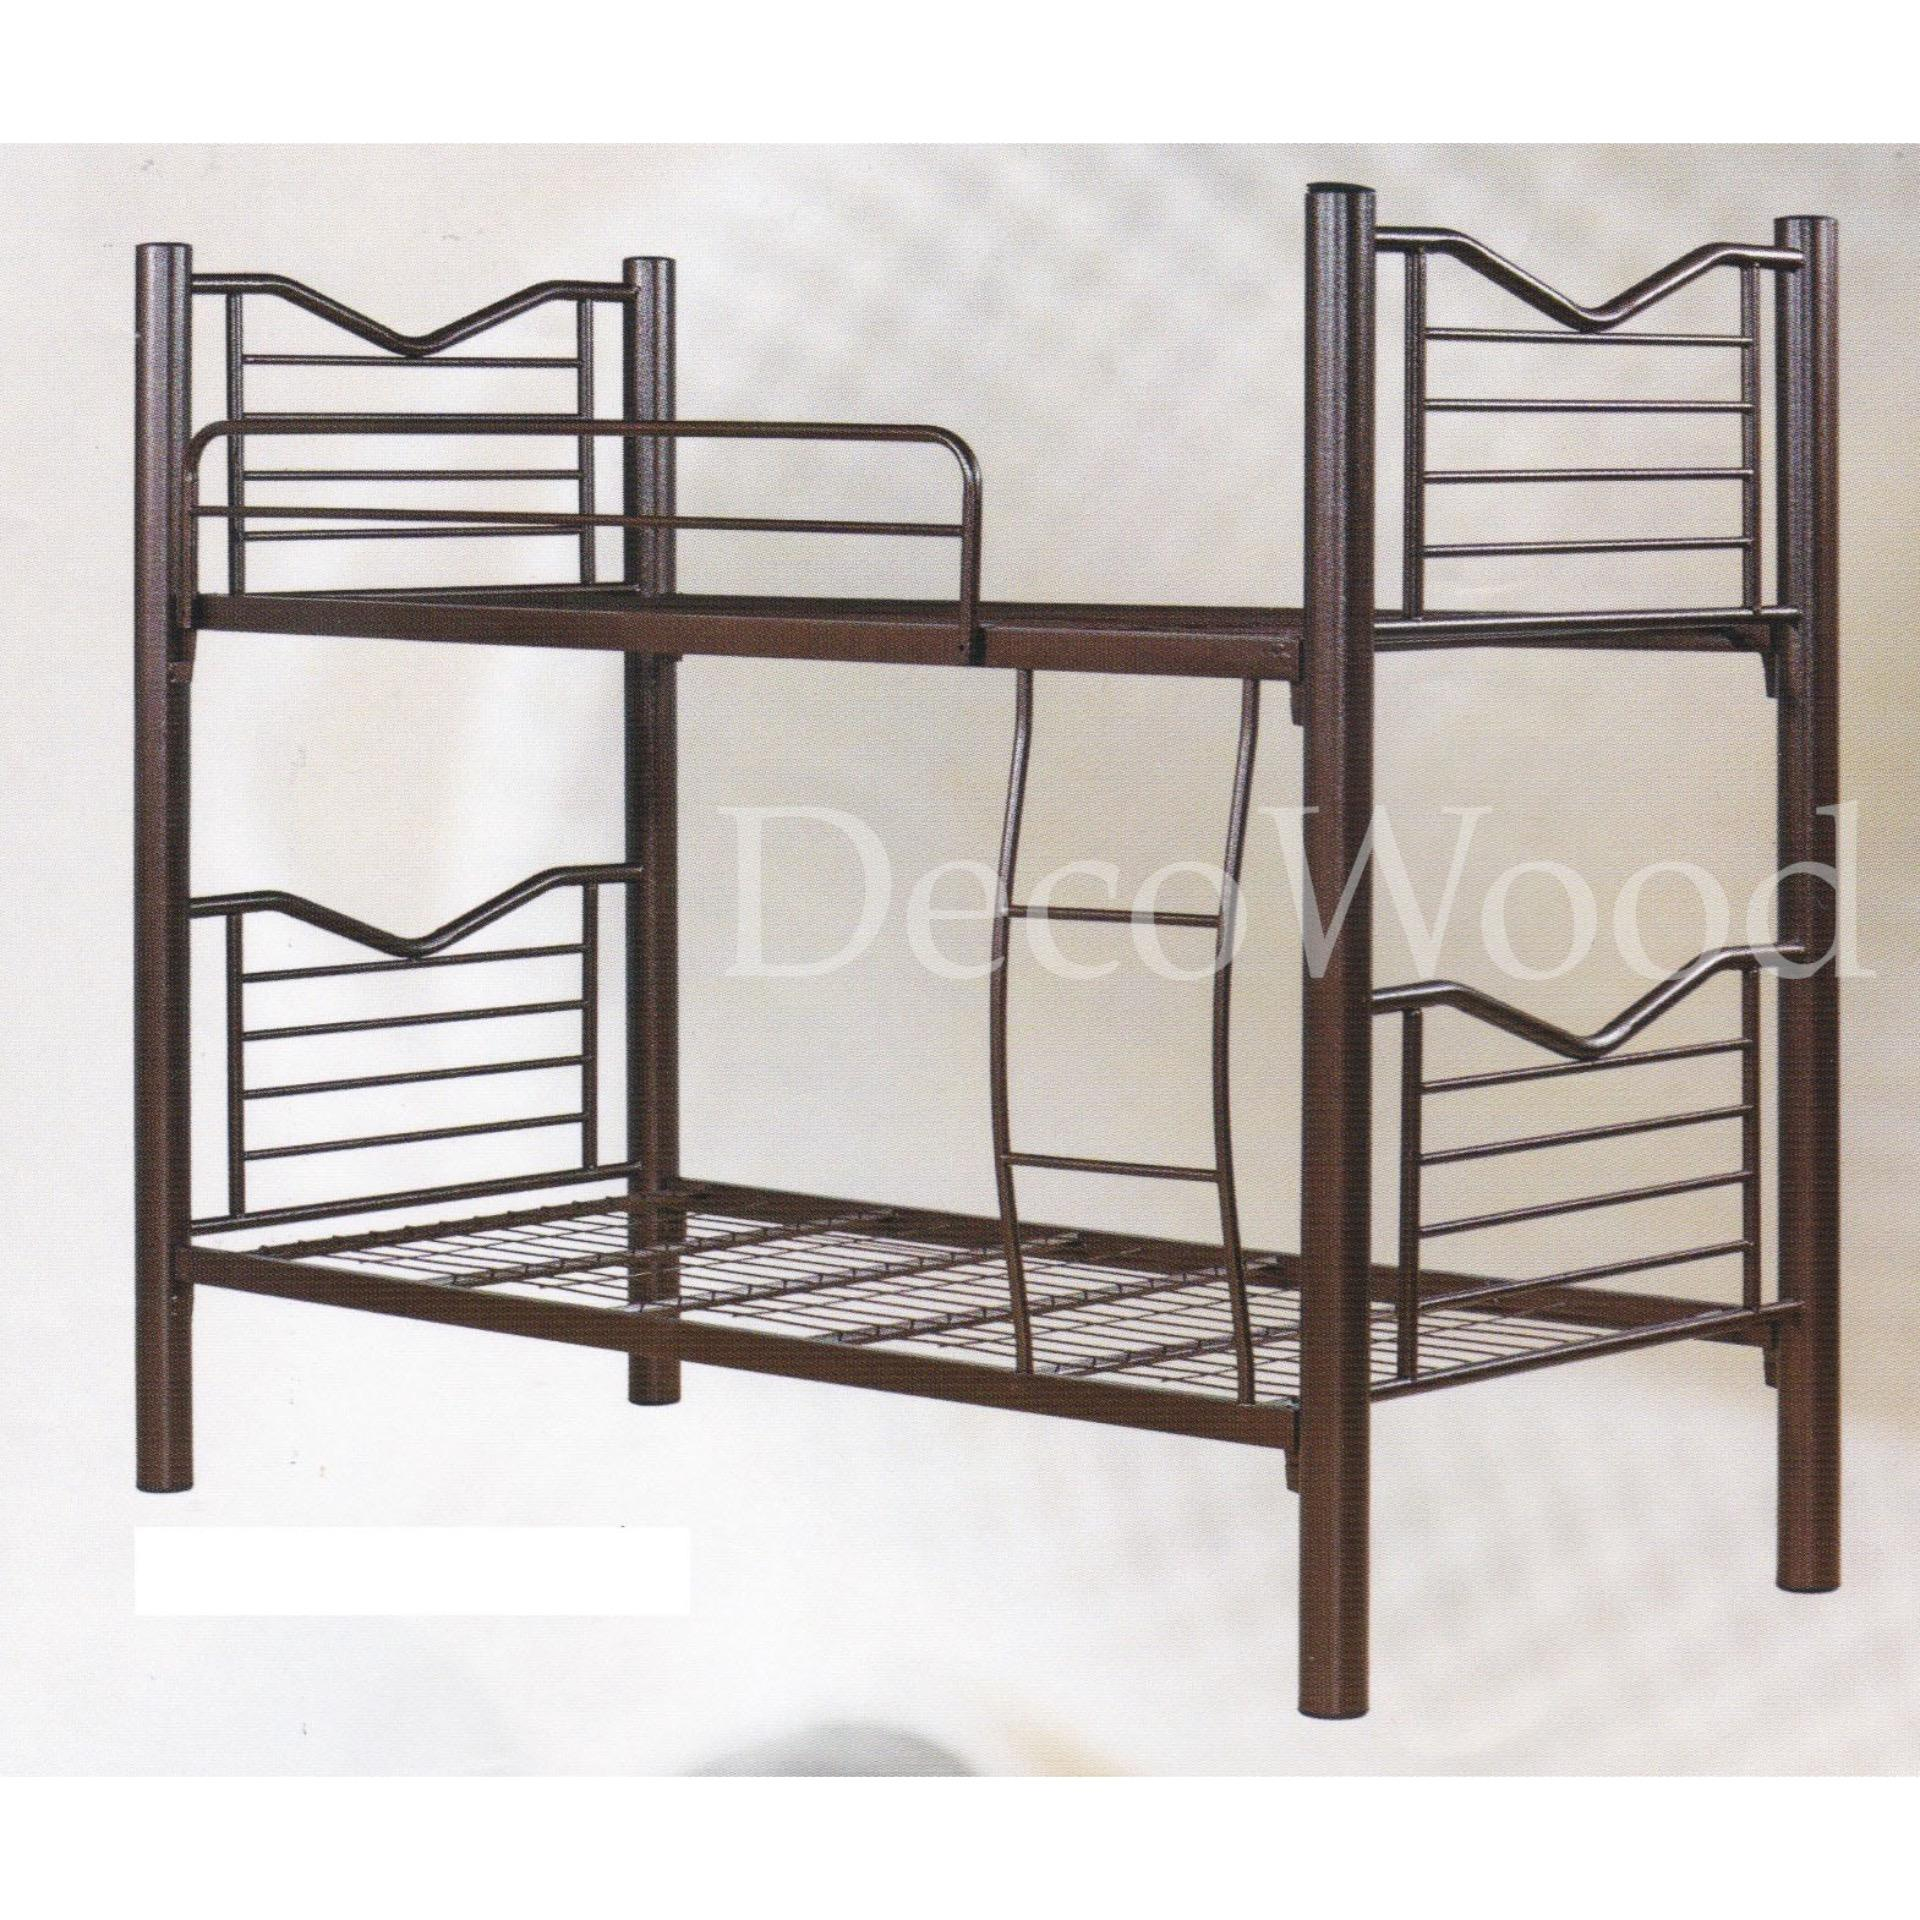 Super Strong Single Size Metal Bunk End 5 9 2021 12 00 Am